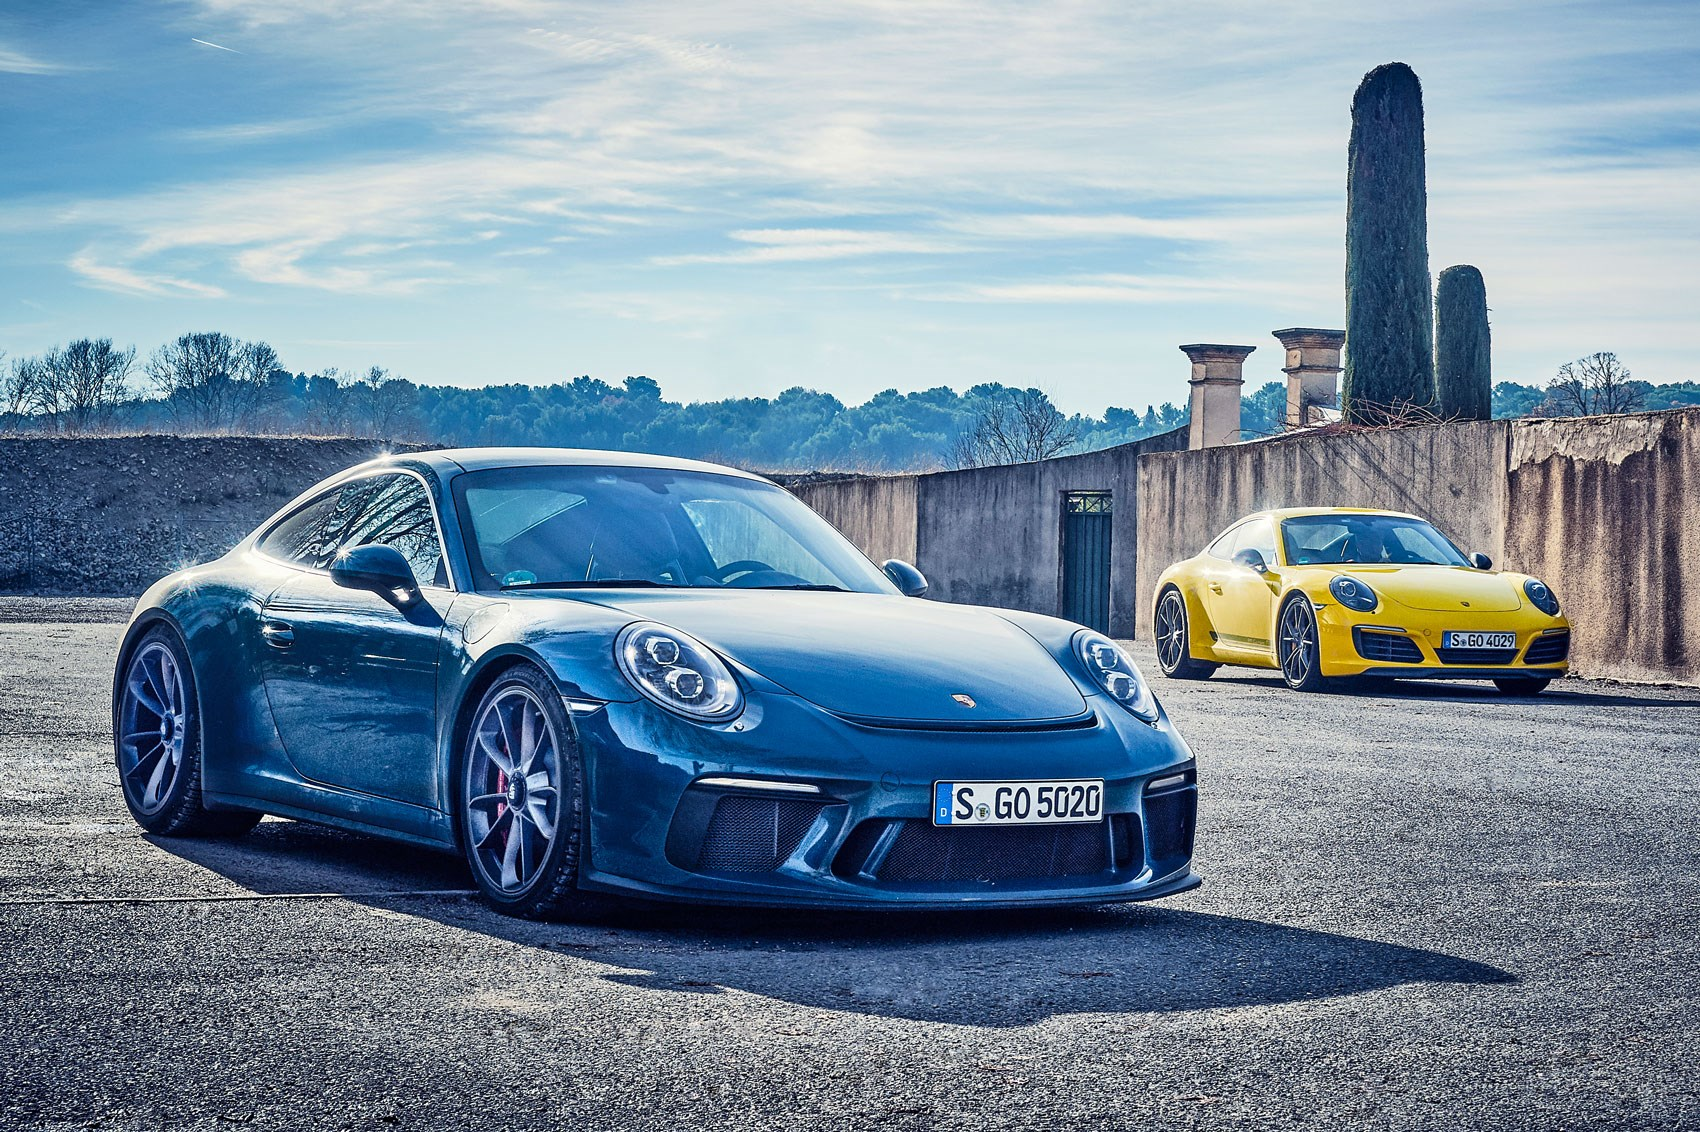 Porsche 911 Carrera T Vs Gt3 Touring 2018 Twin Test